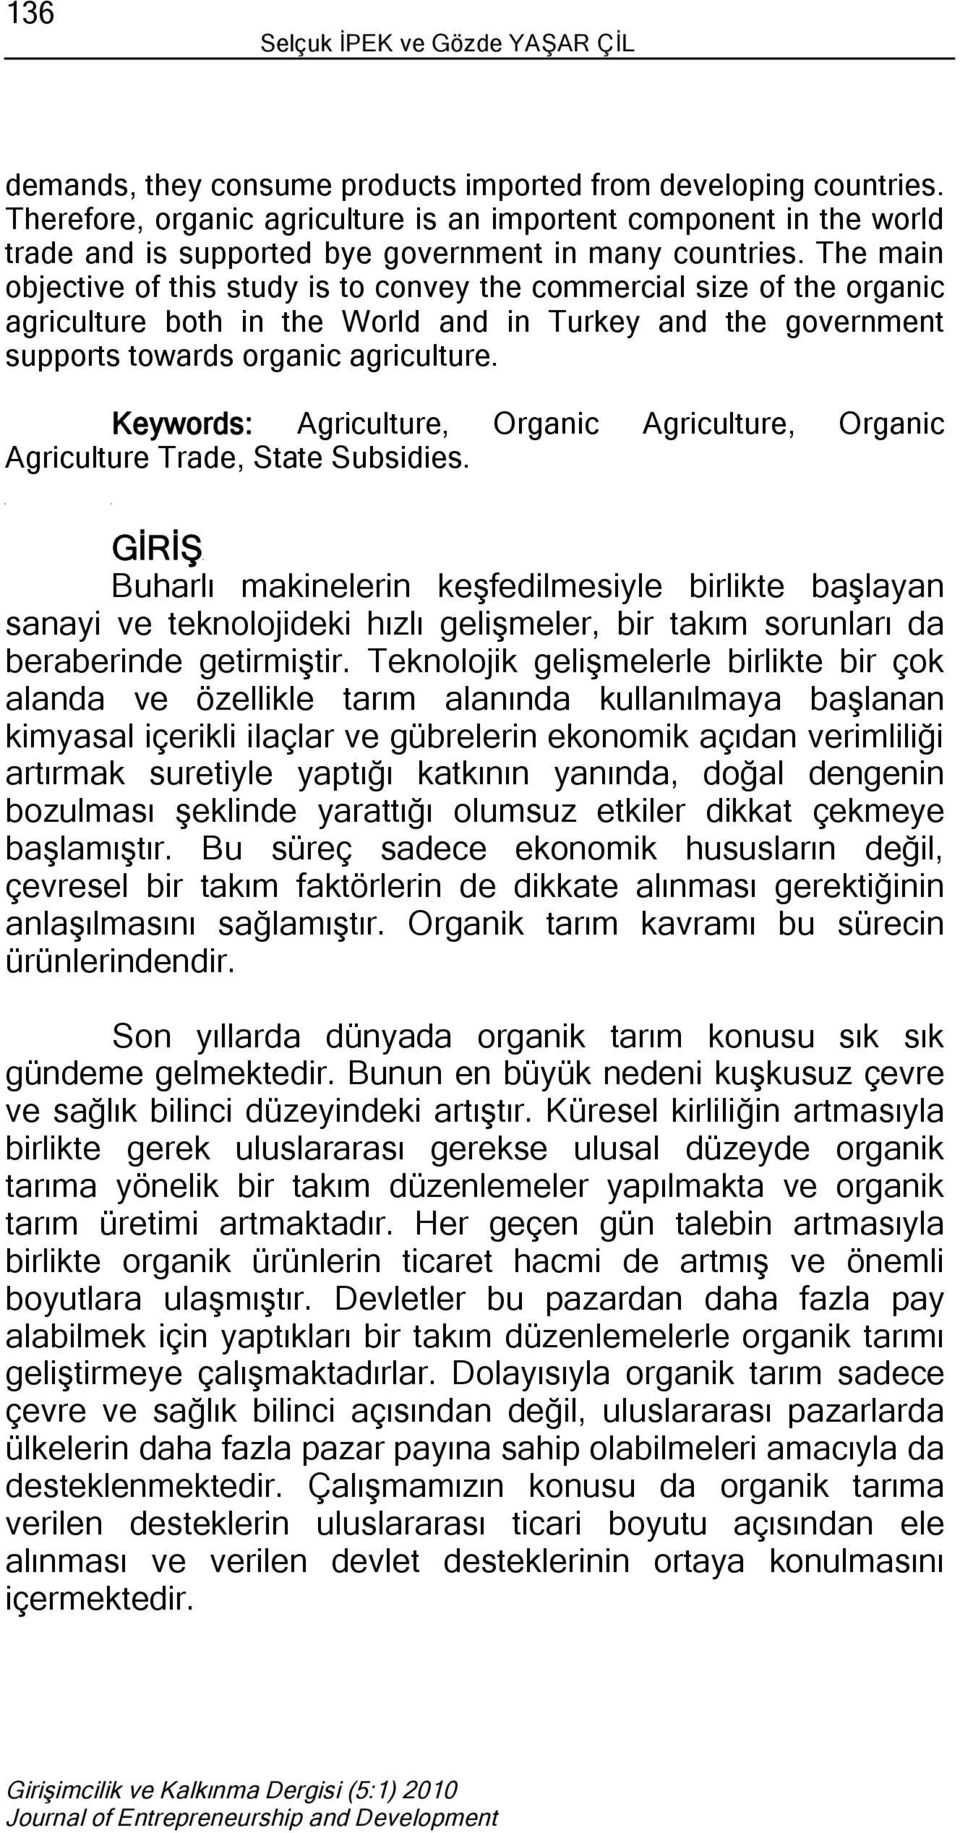 The main objective of this study is to convey the commercial size of the organic agriculture both in the World and in Turkey and the government supports towards organic agriculture.